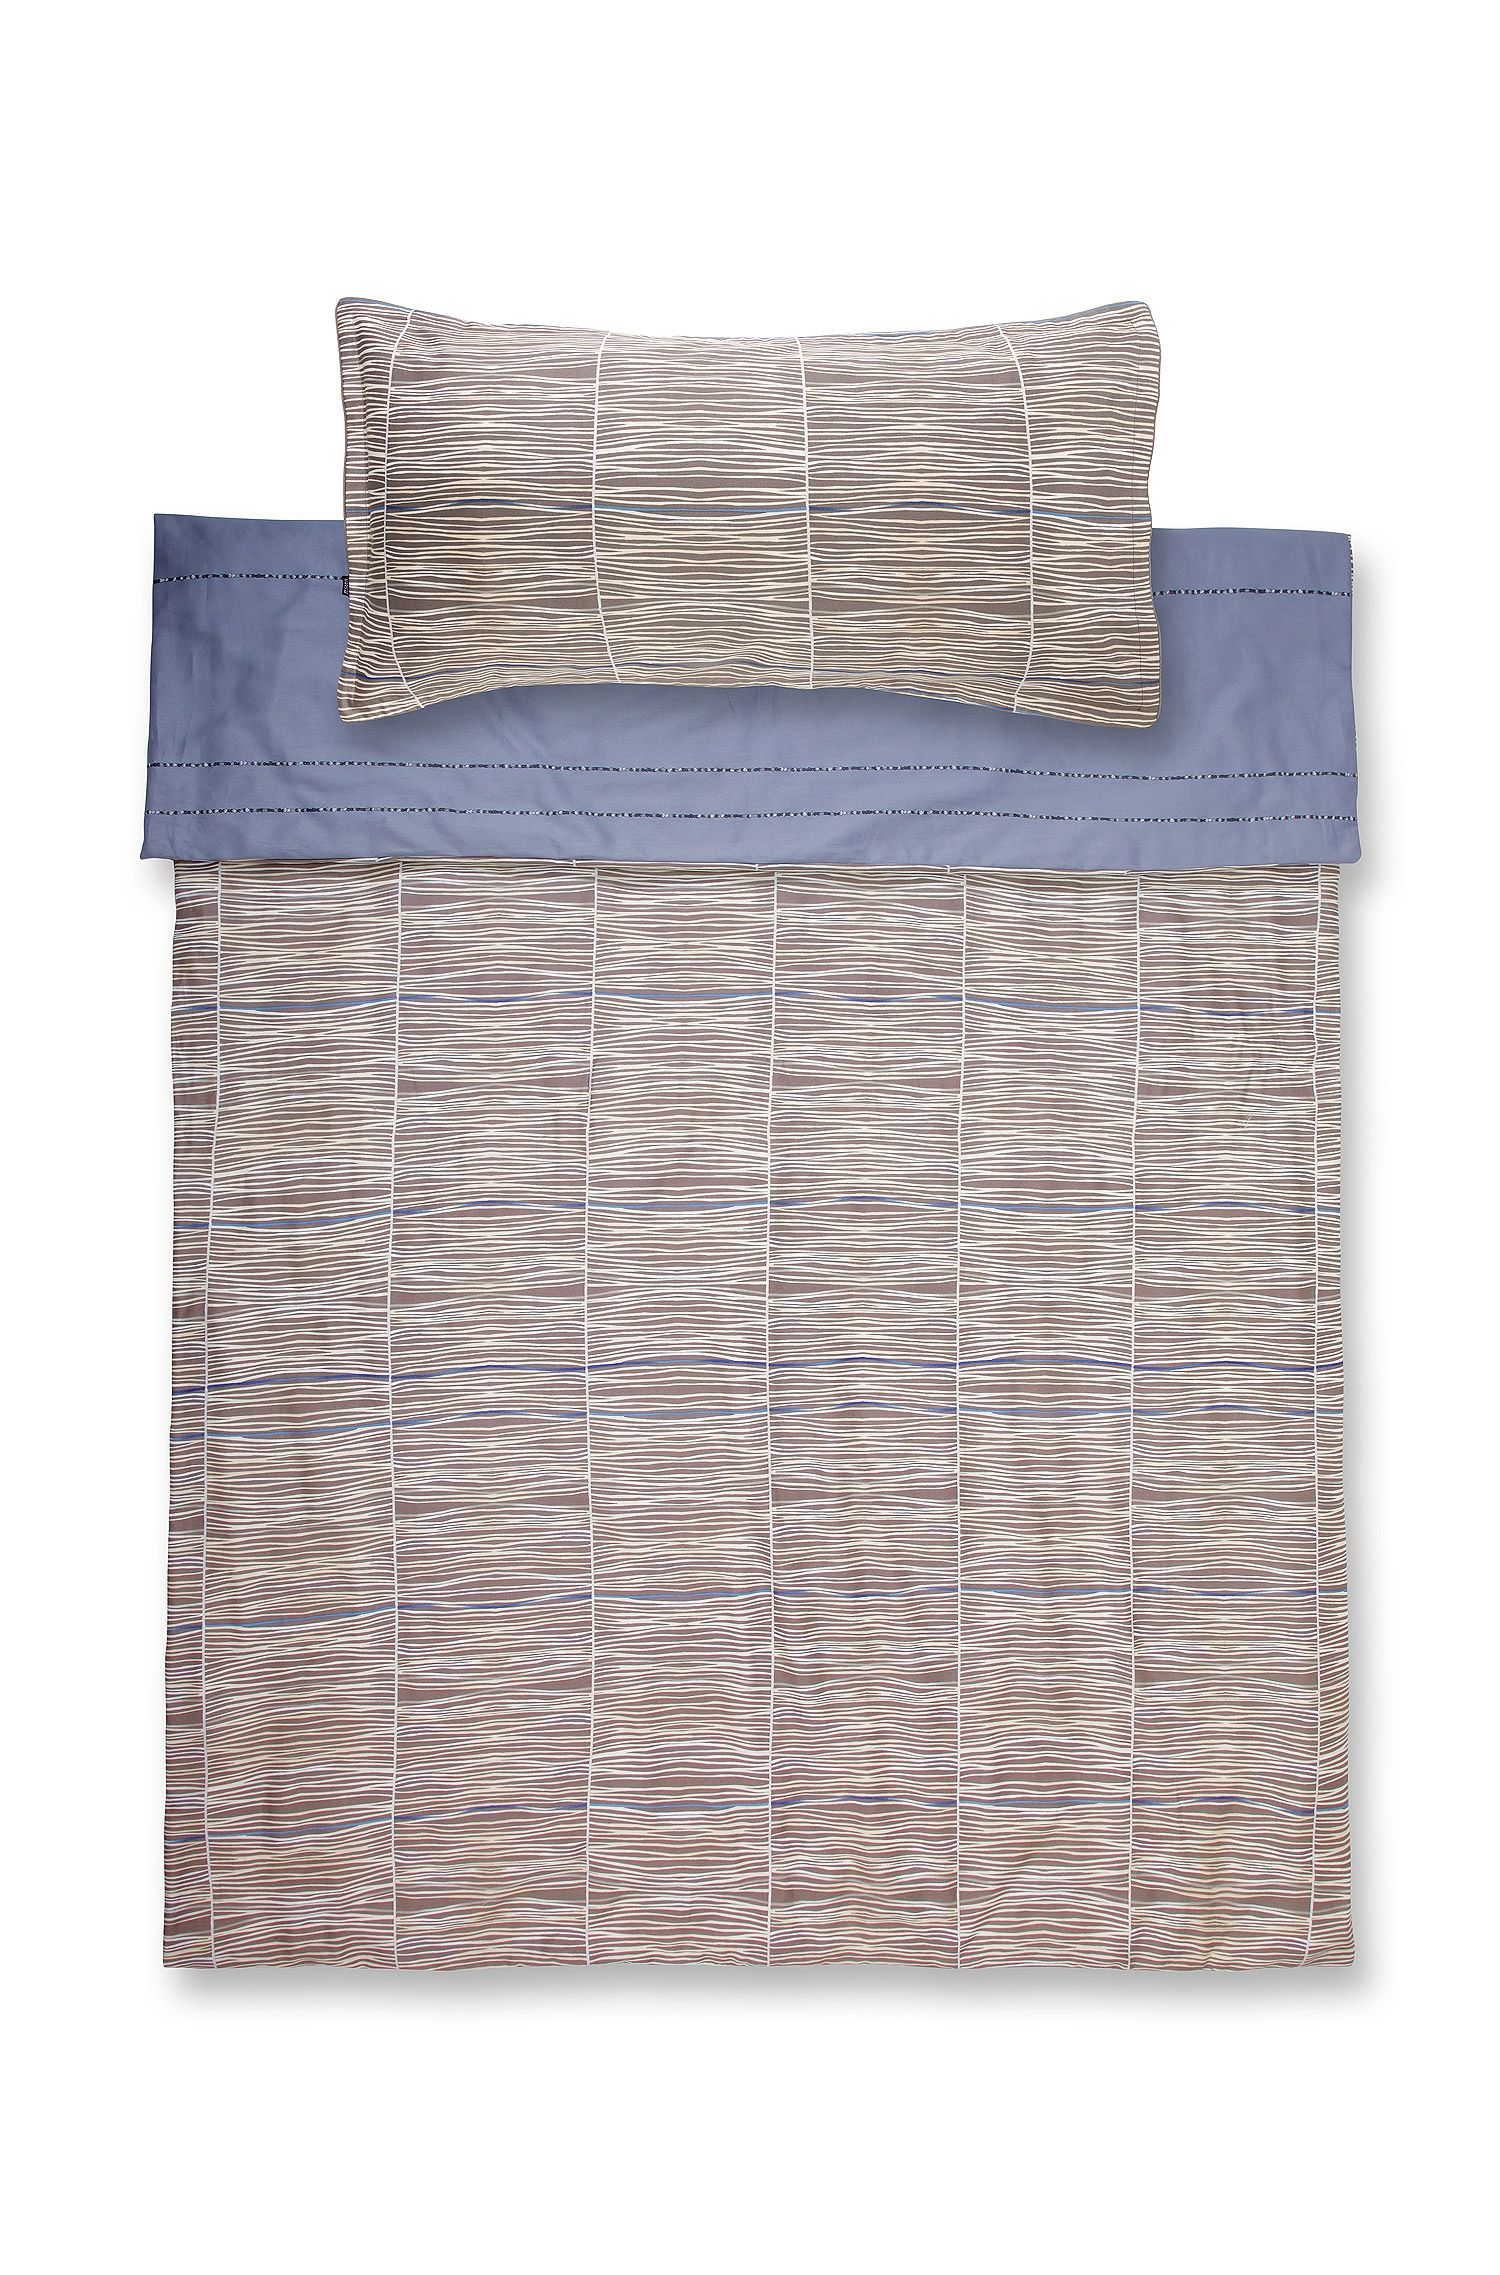 Duvet cover 'BLUESONG' in cotton satin, Light Brown